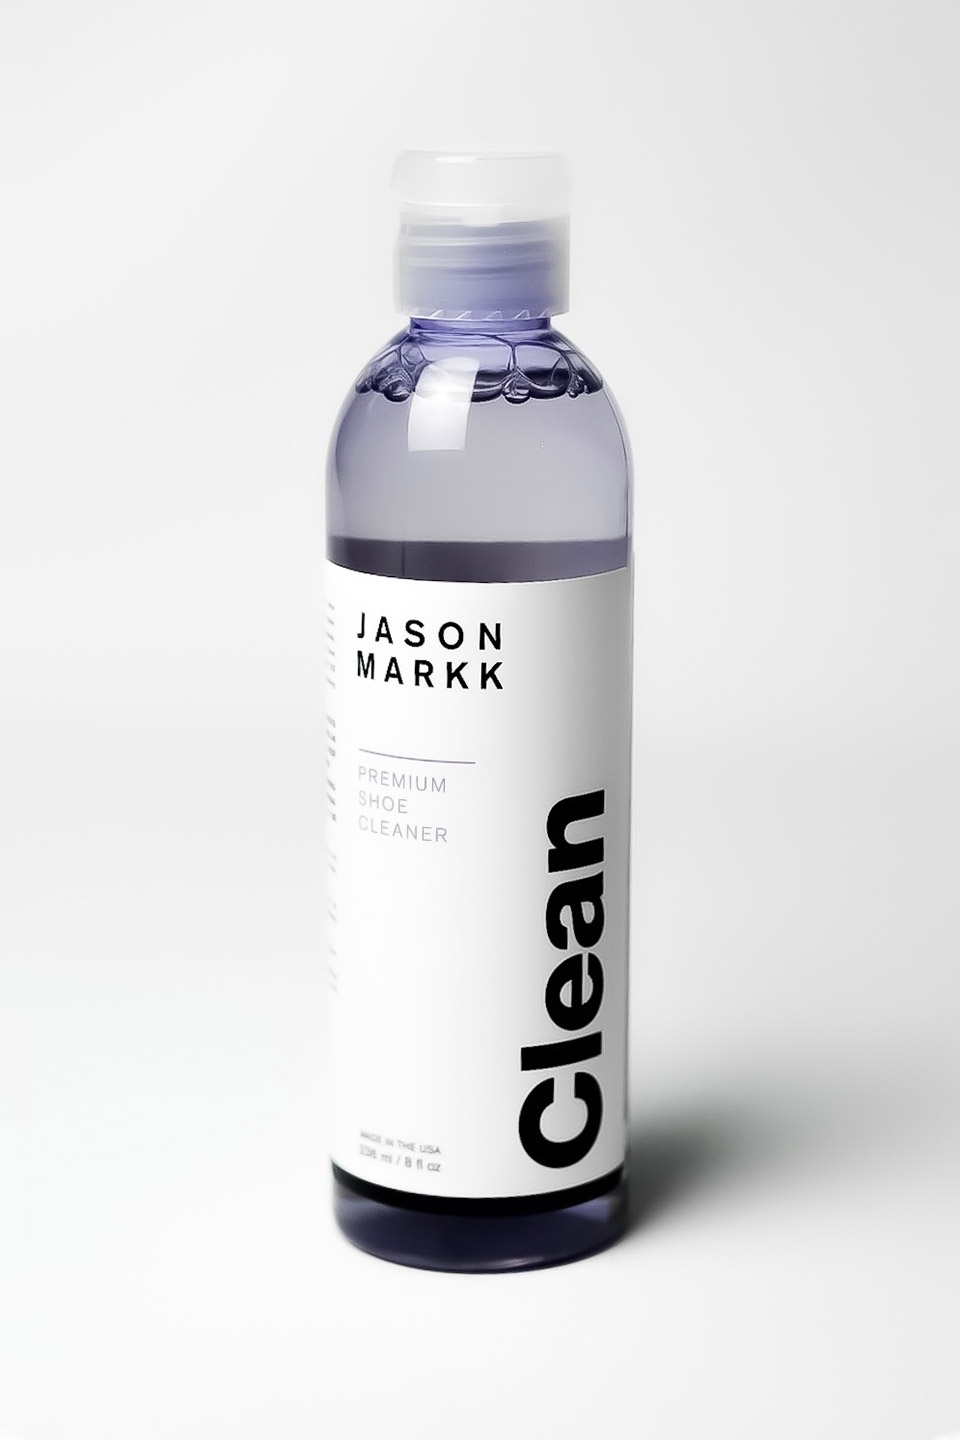 Jason Markk Jason Markk shoe cleaner